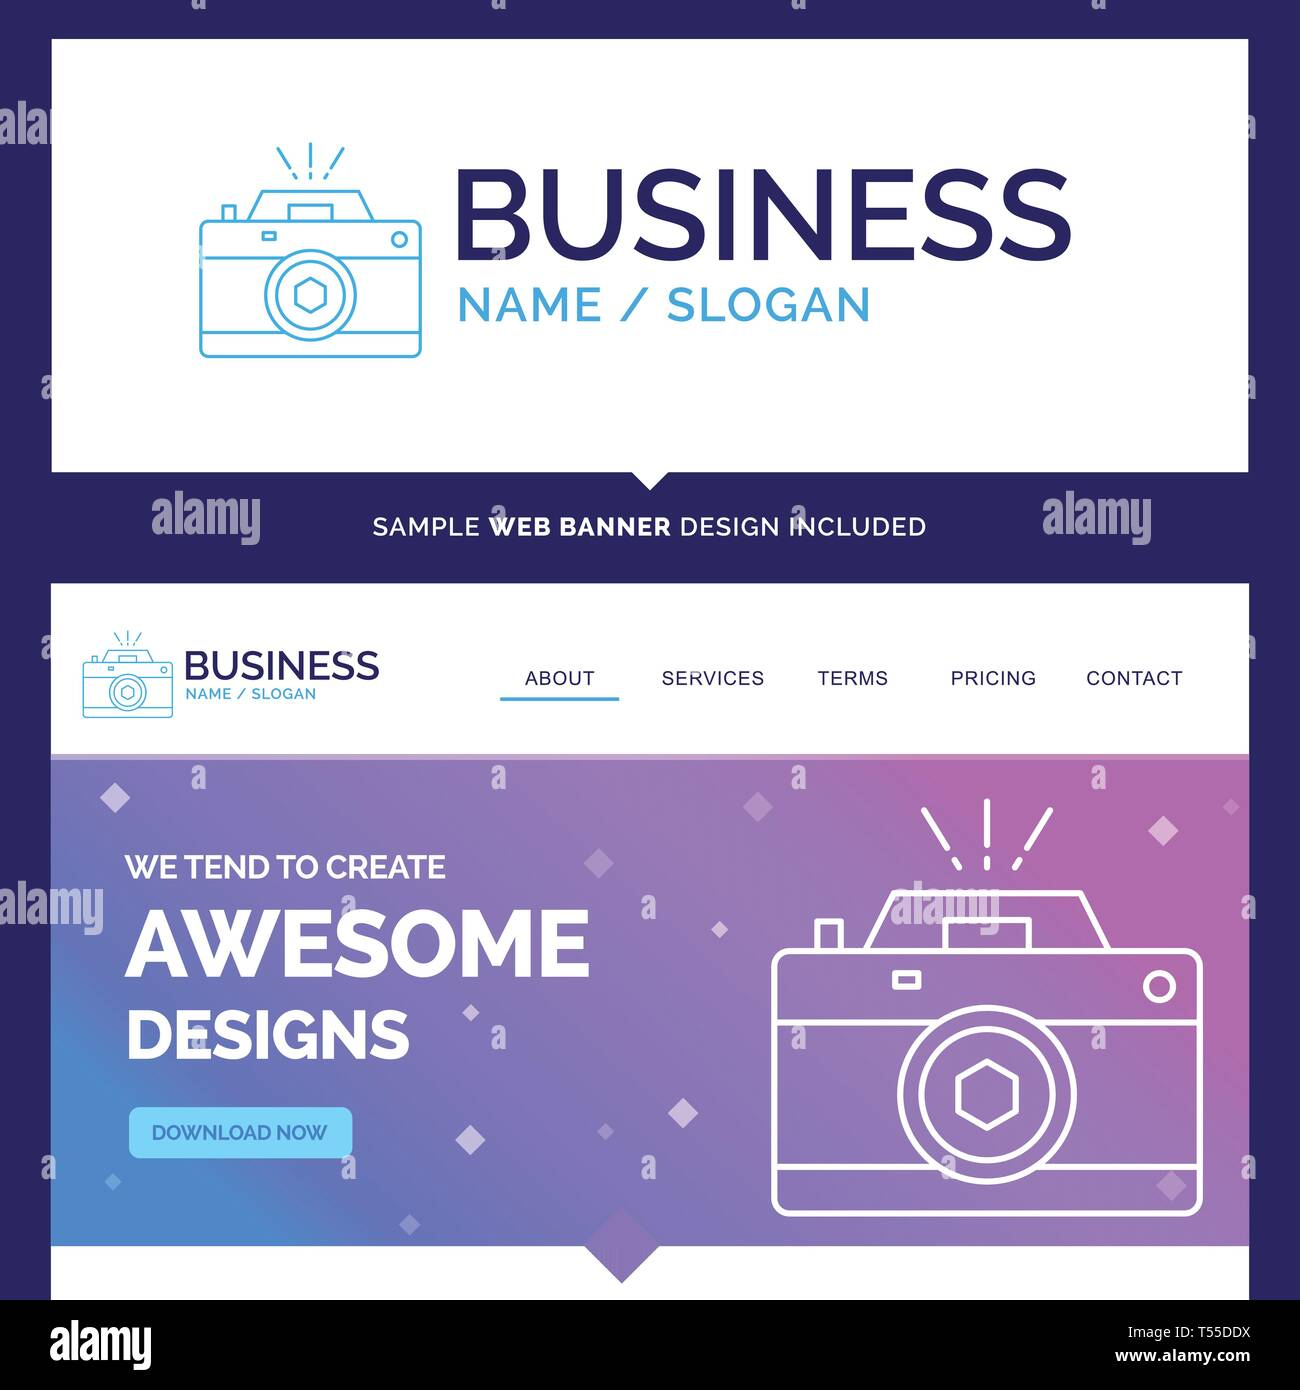 Beautiful Business Concept Brand Name Camera, photography, capture, photo, aperture Logo Design and Pink and Blue background Website Header Design tem - Stock Vector